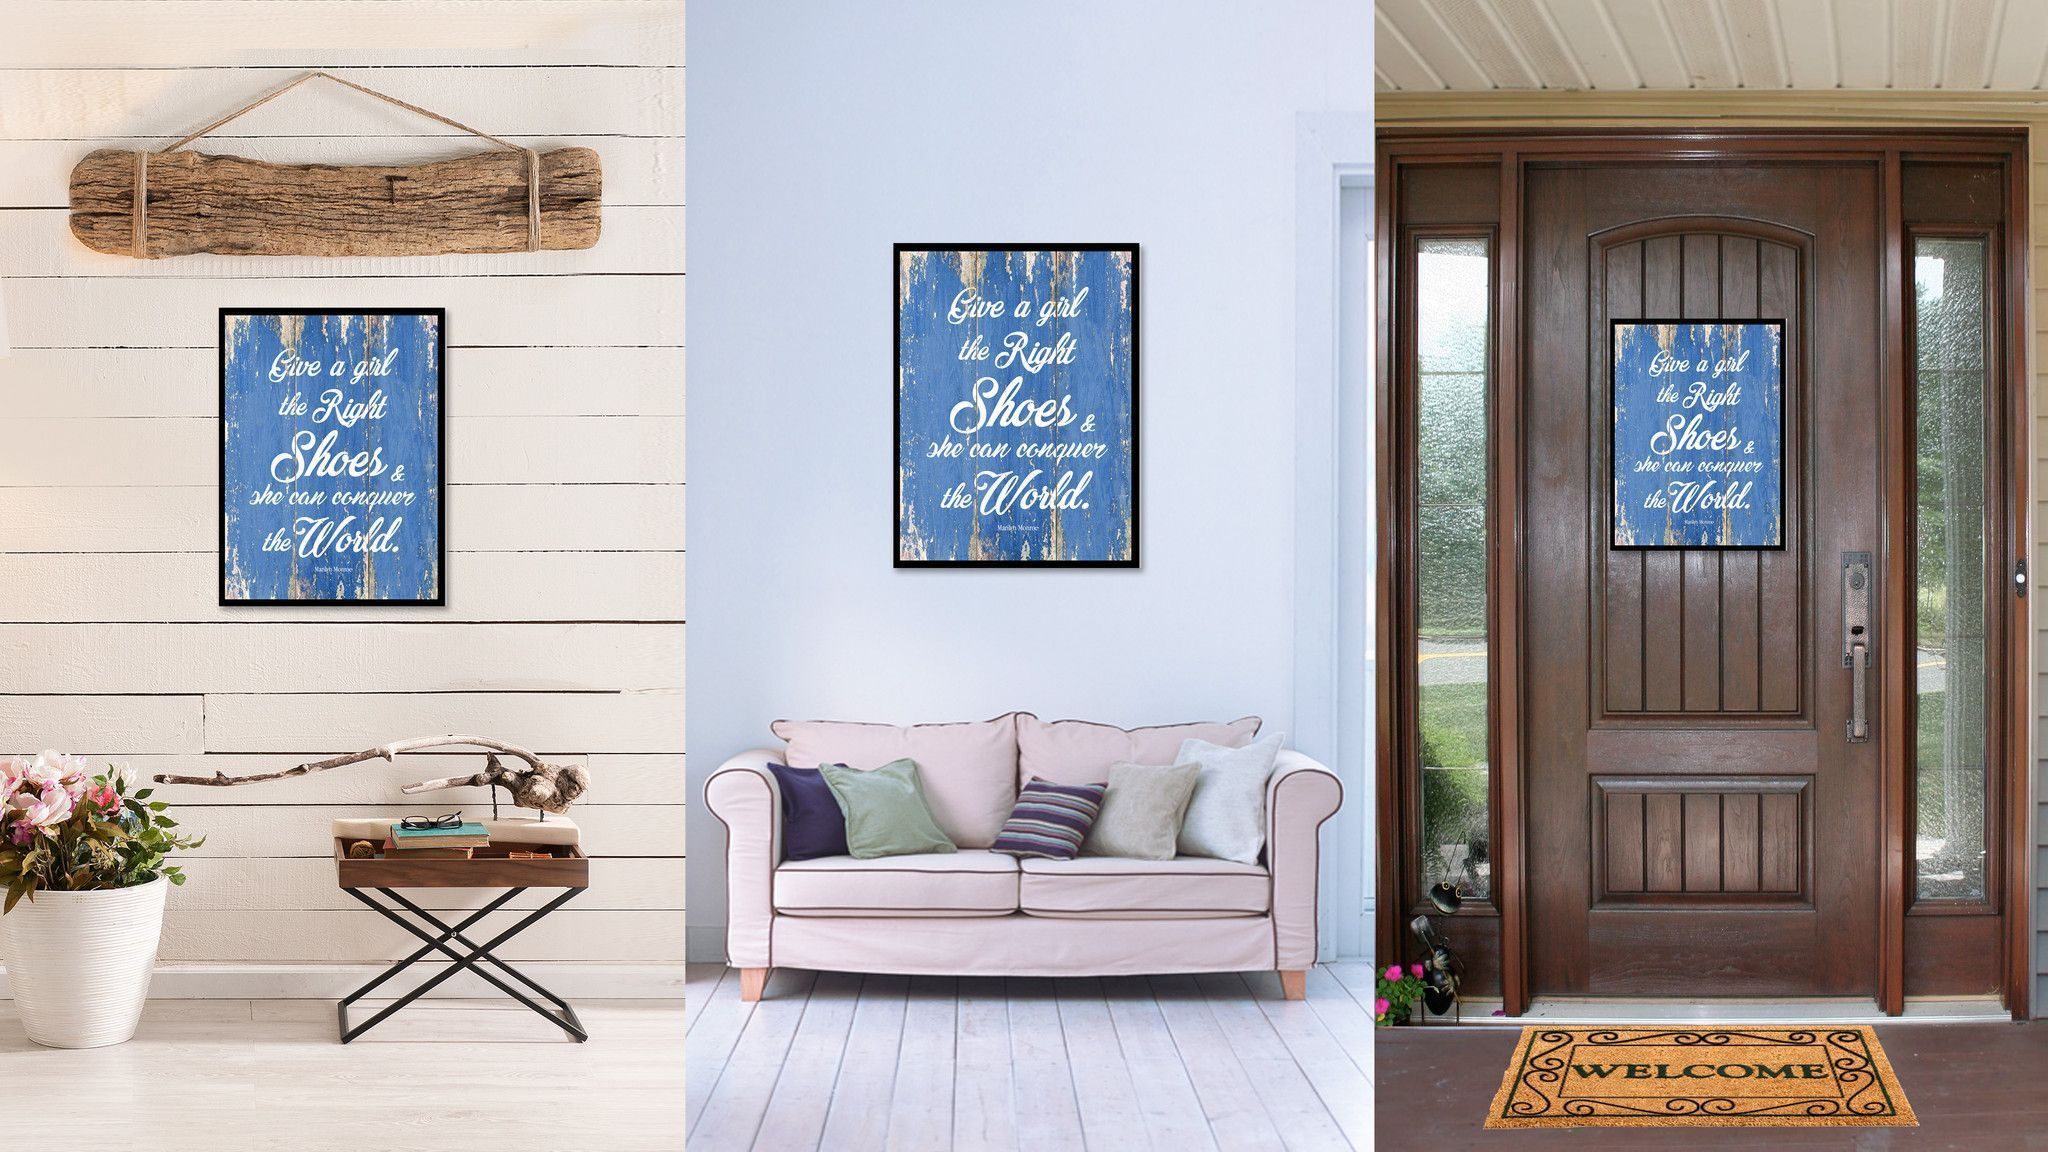 SpotColorArt is a shop that specializes in Home Decor Art Perfect